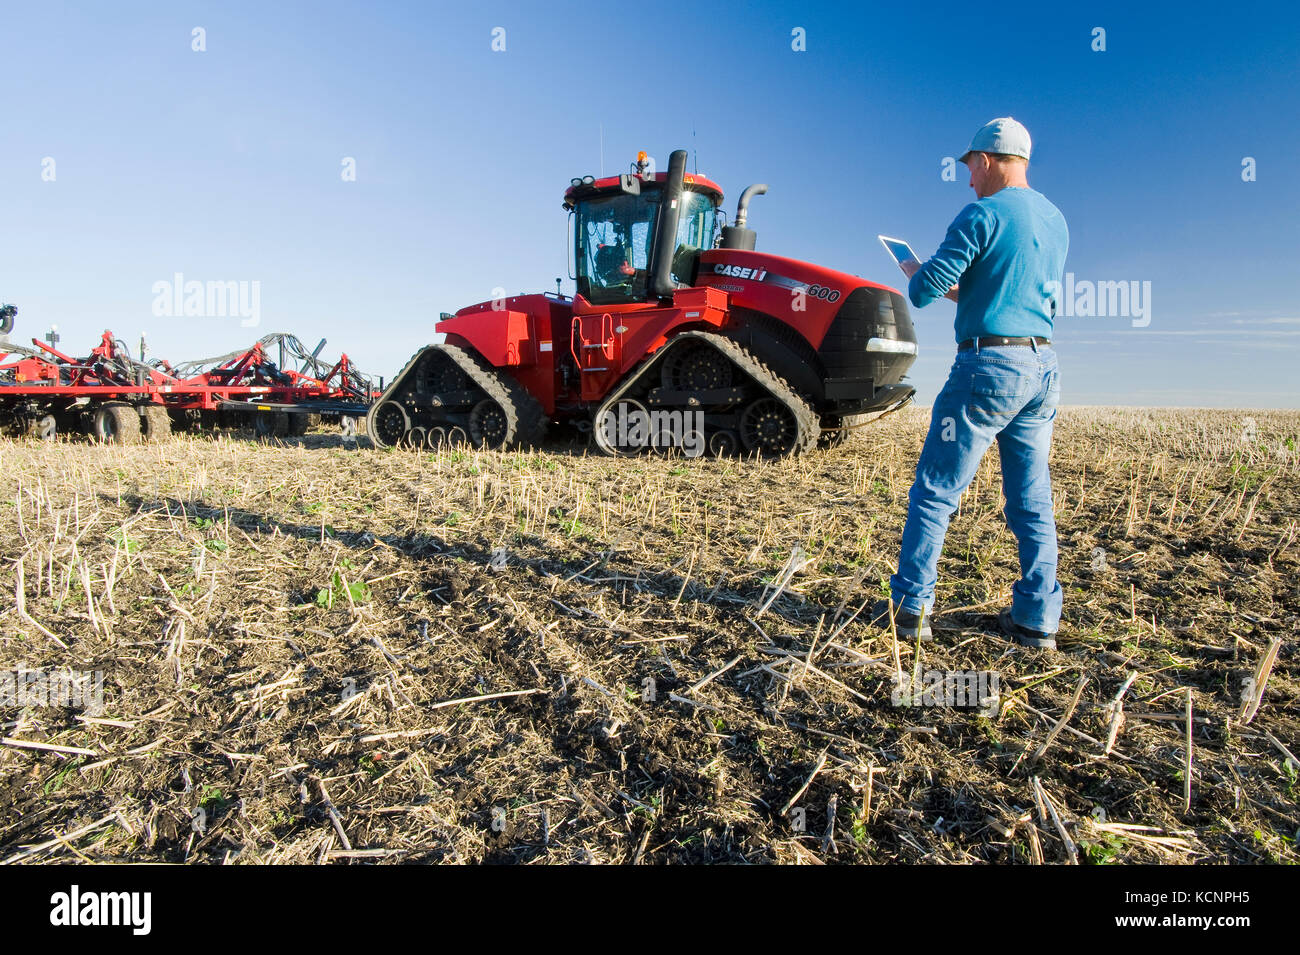 farmer using a tablet in front of a tractor and air seeder planting winter wheat in a zero till field containing - Stock Image